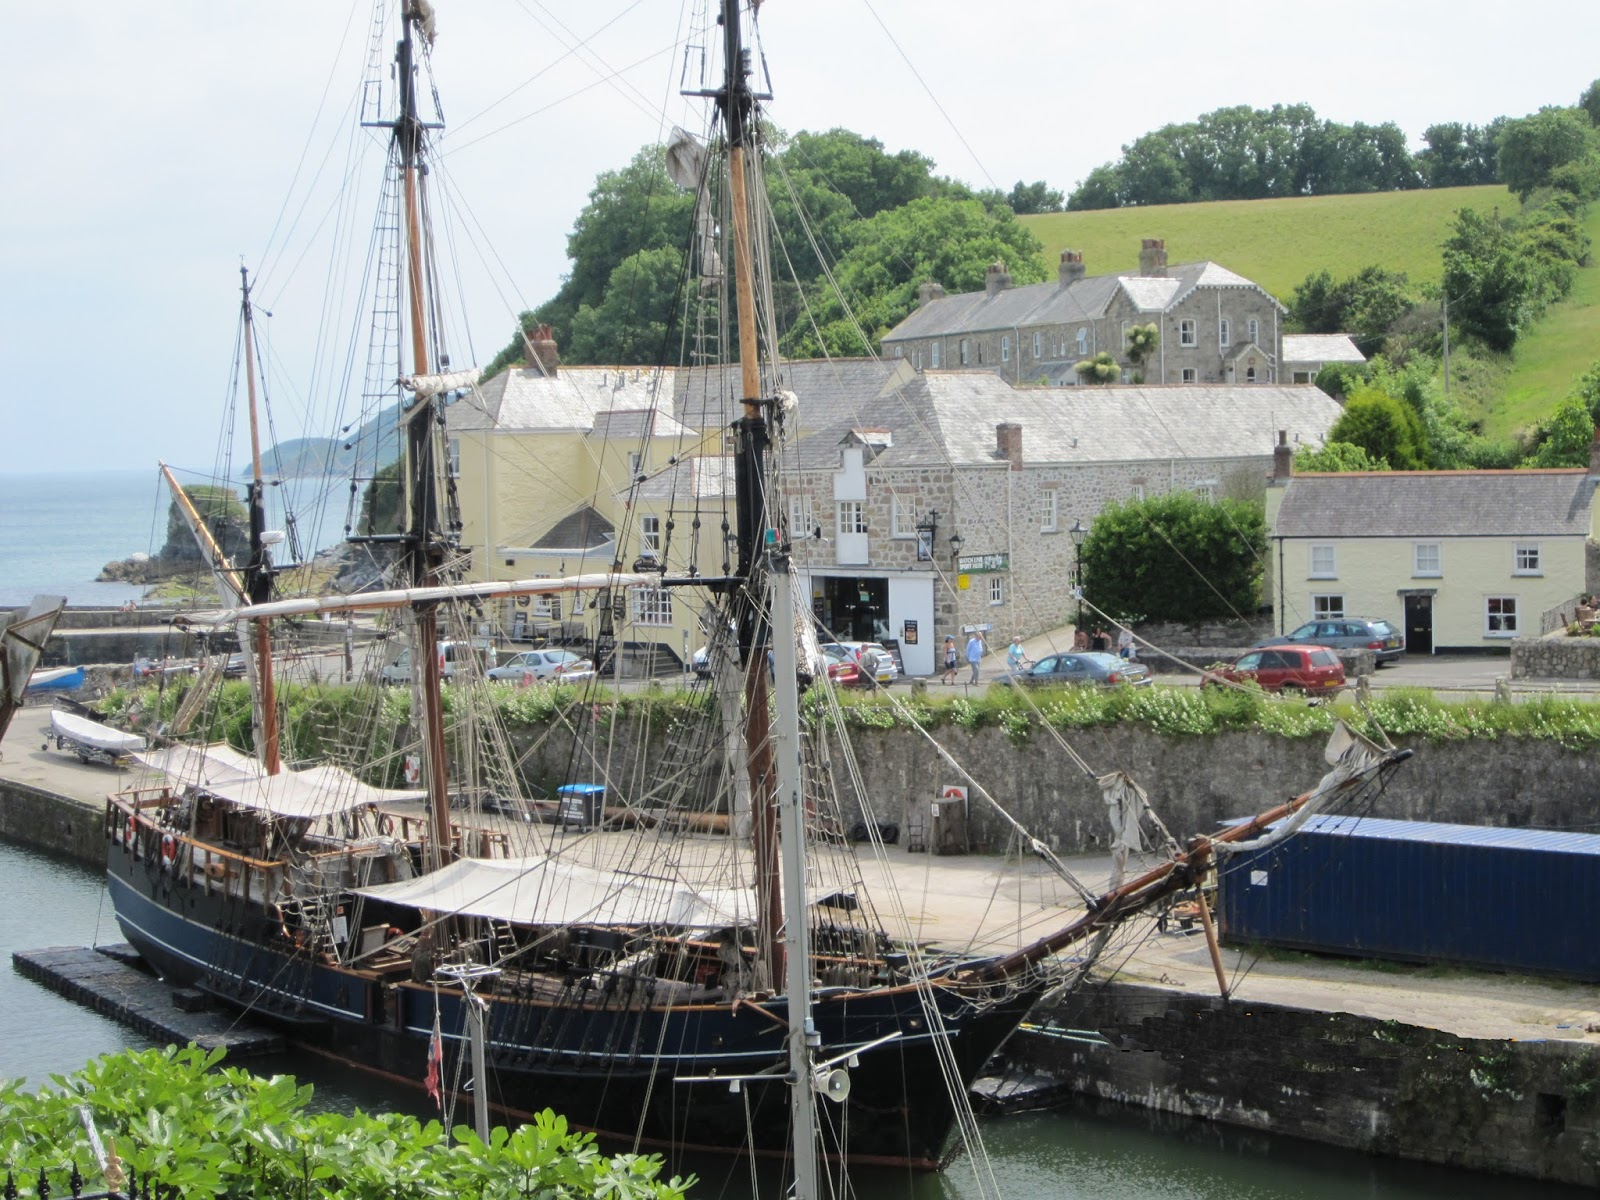 historic Charleston, the location for the filming Poldark